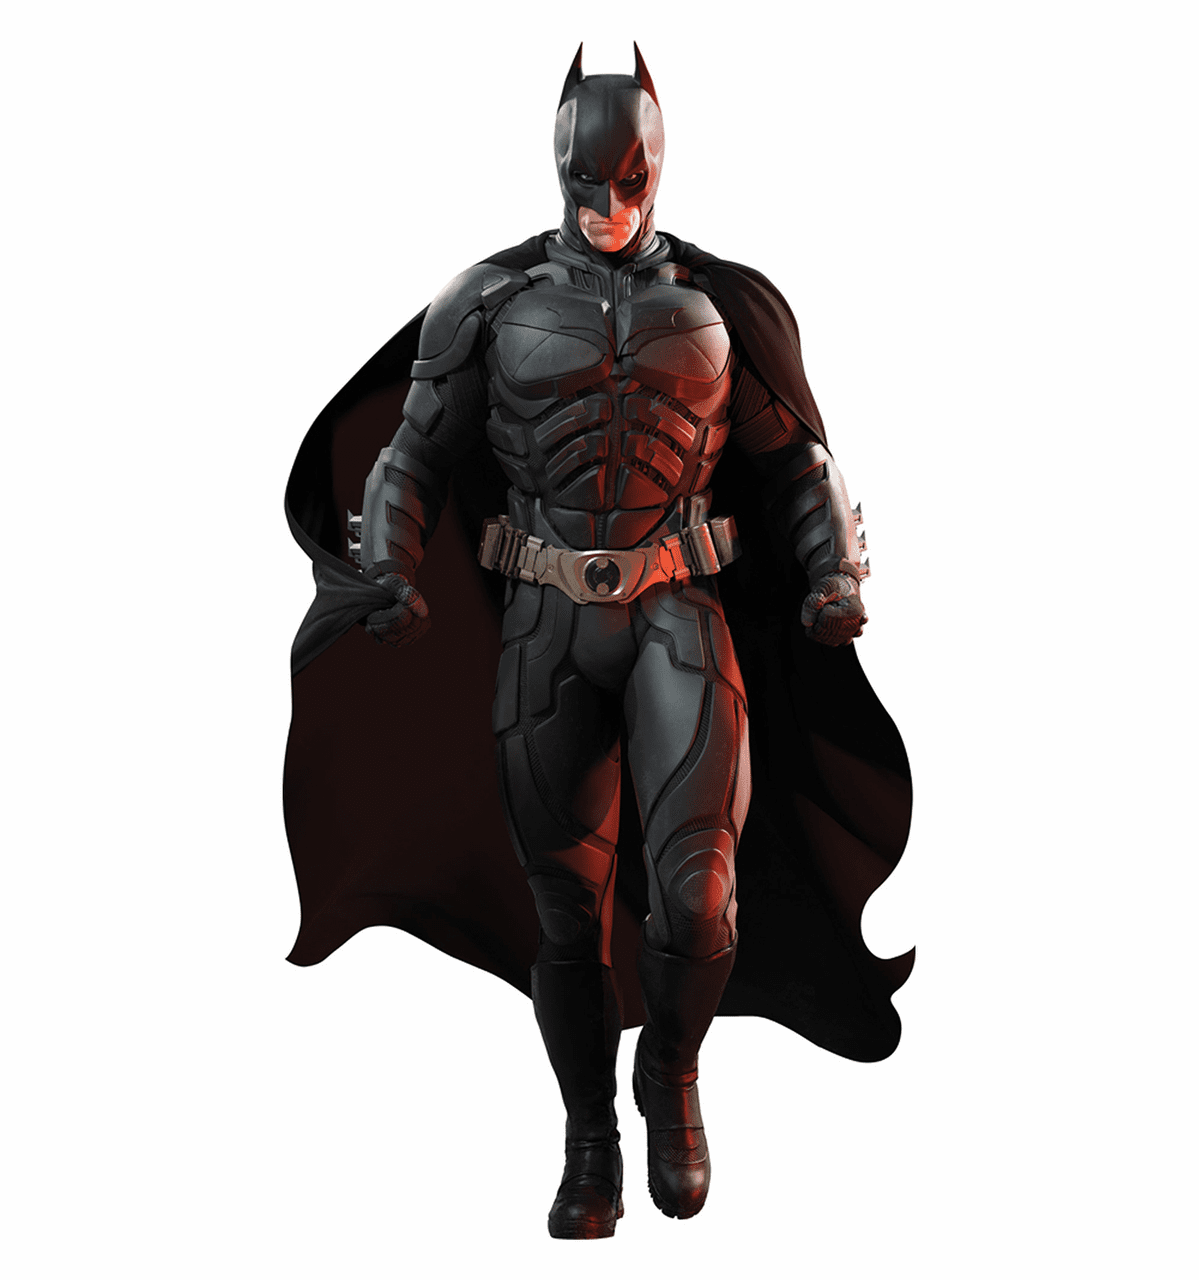 Life Size Dark Knight Rises Standees